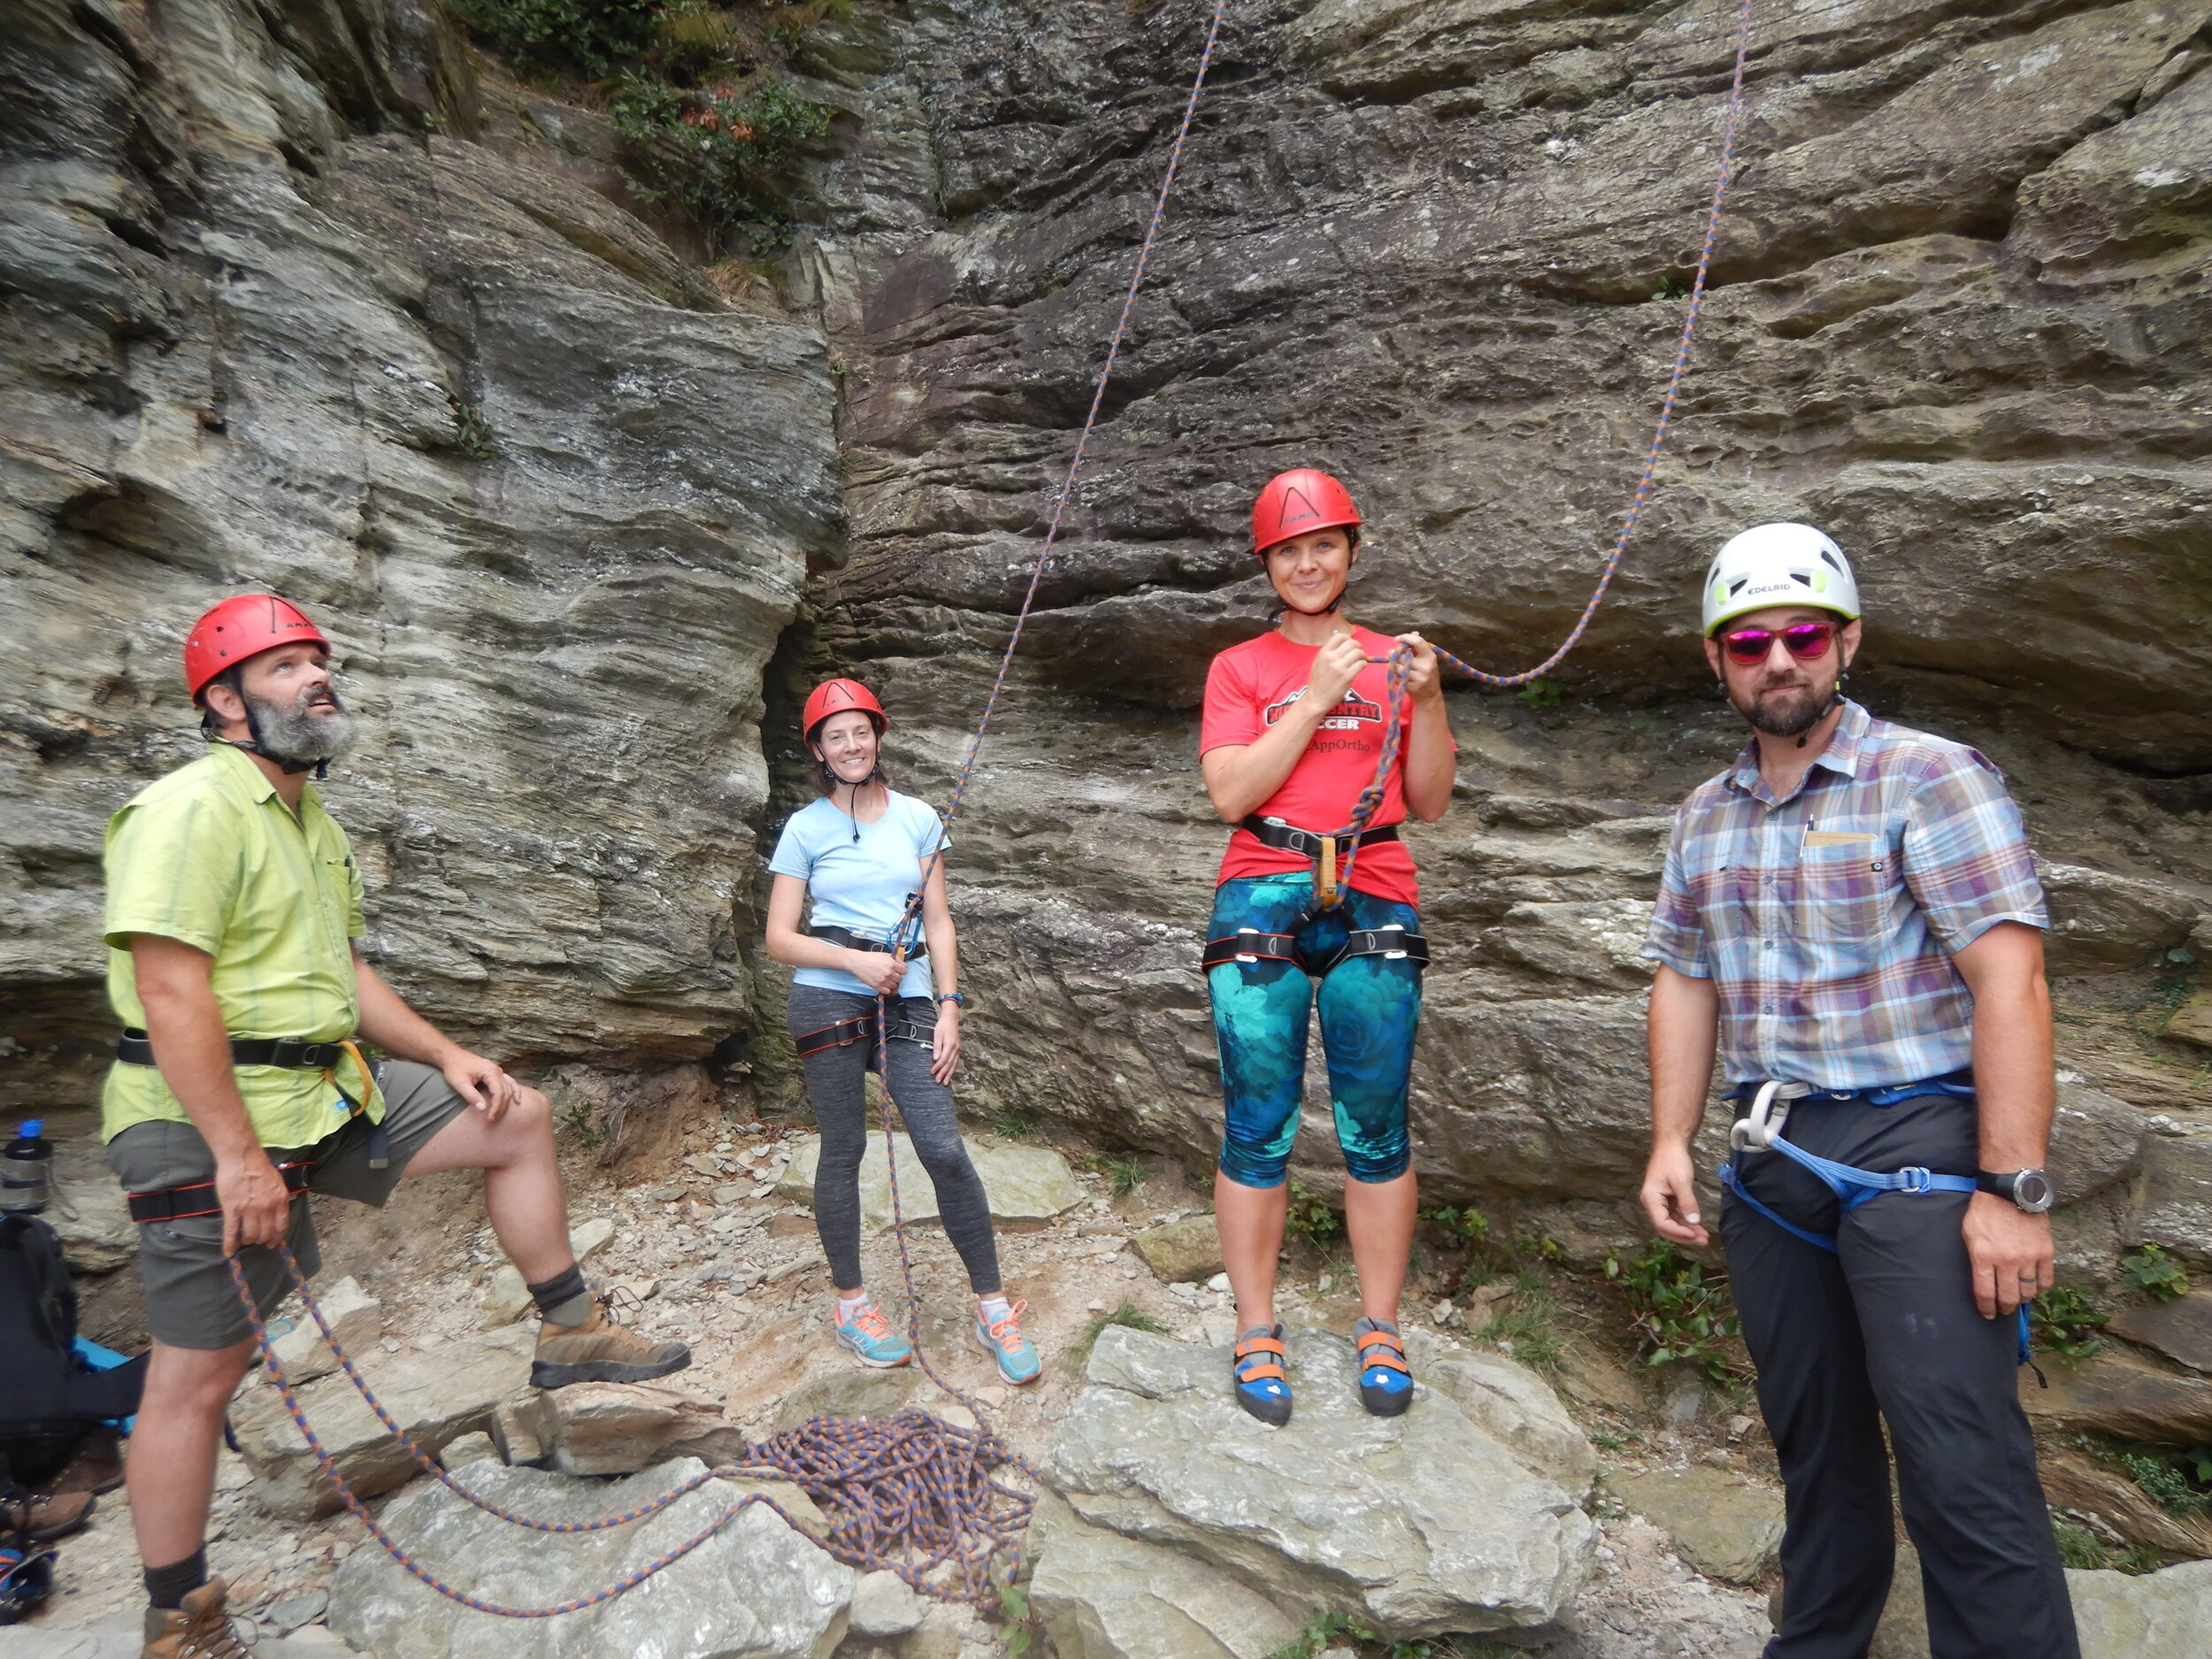 Tom instructs a rope team comprised of Molly, Stephanie, Daniel, and Lionel (not pictured here) during their day of rock climbing and rappelling.